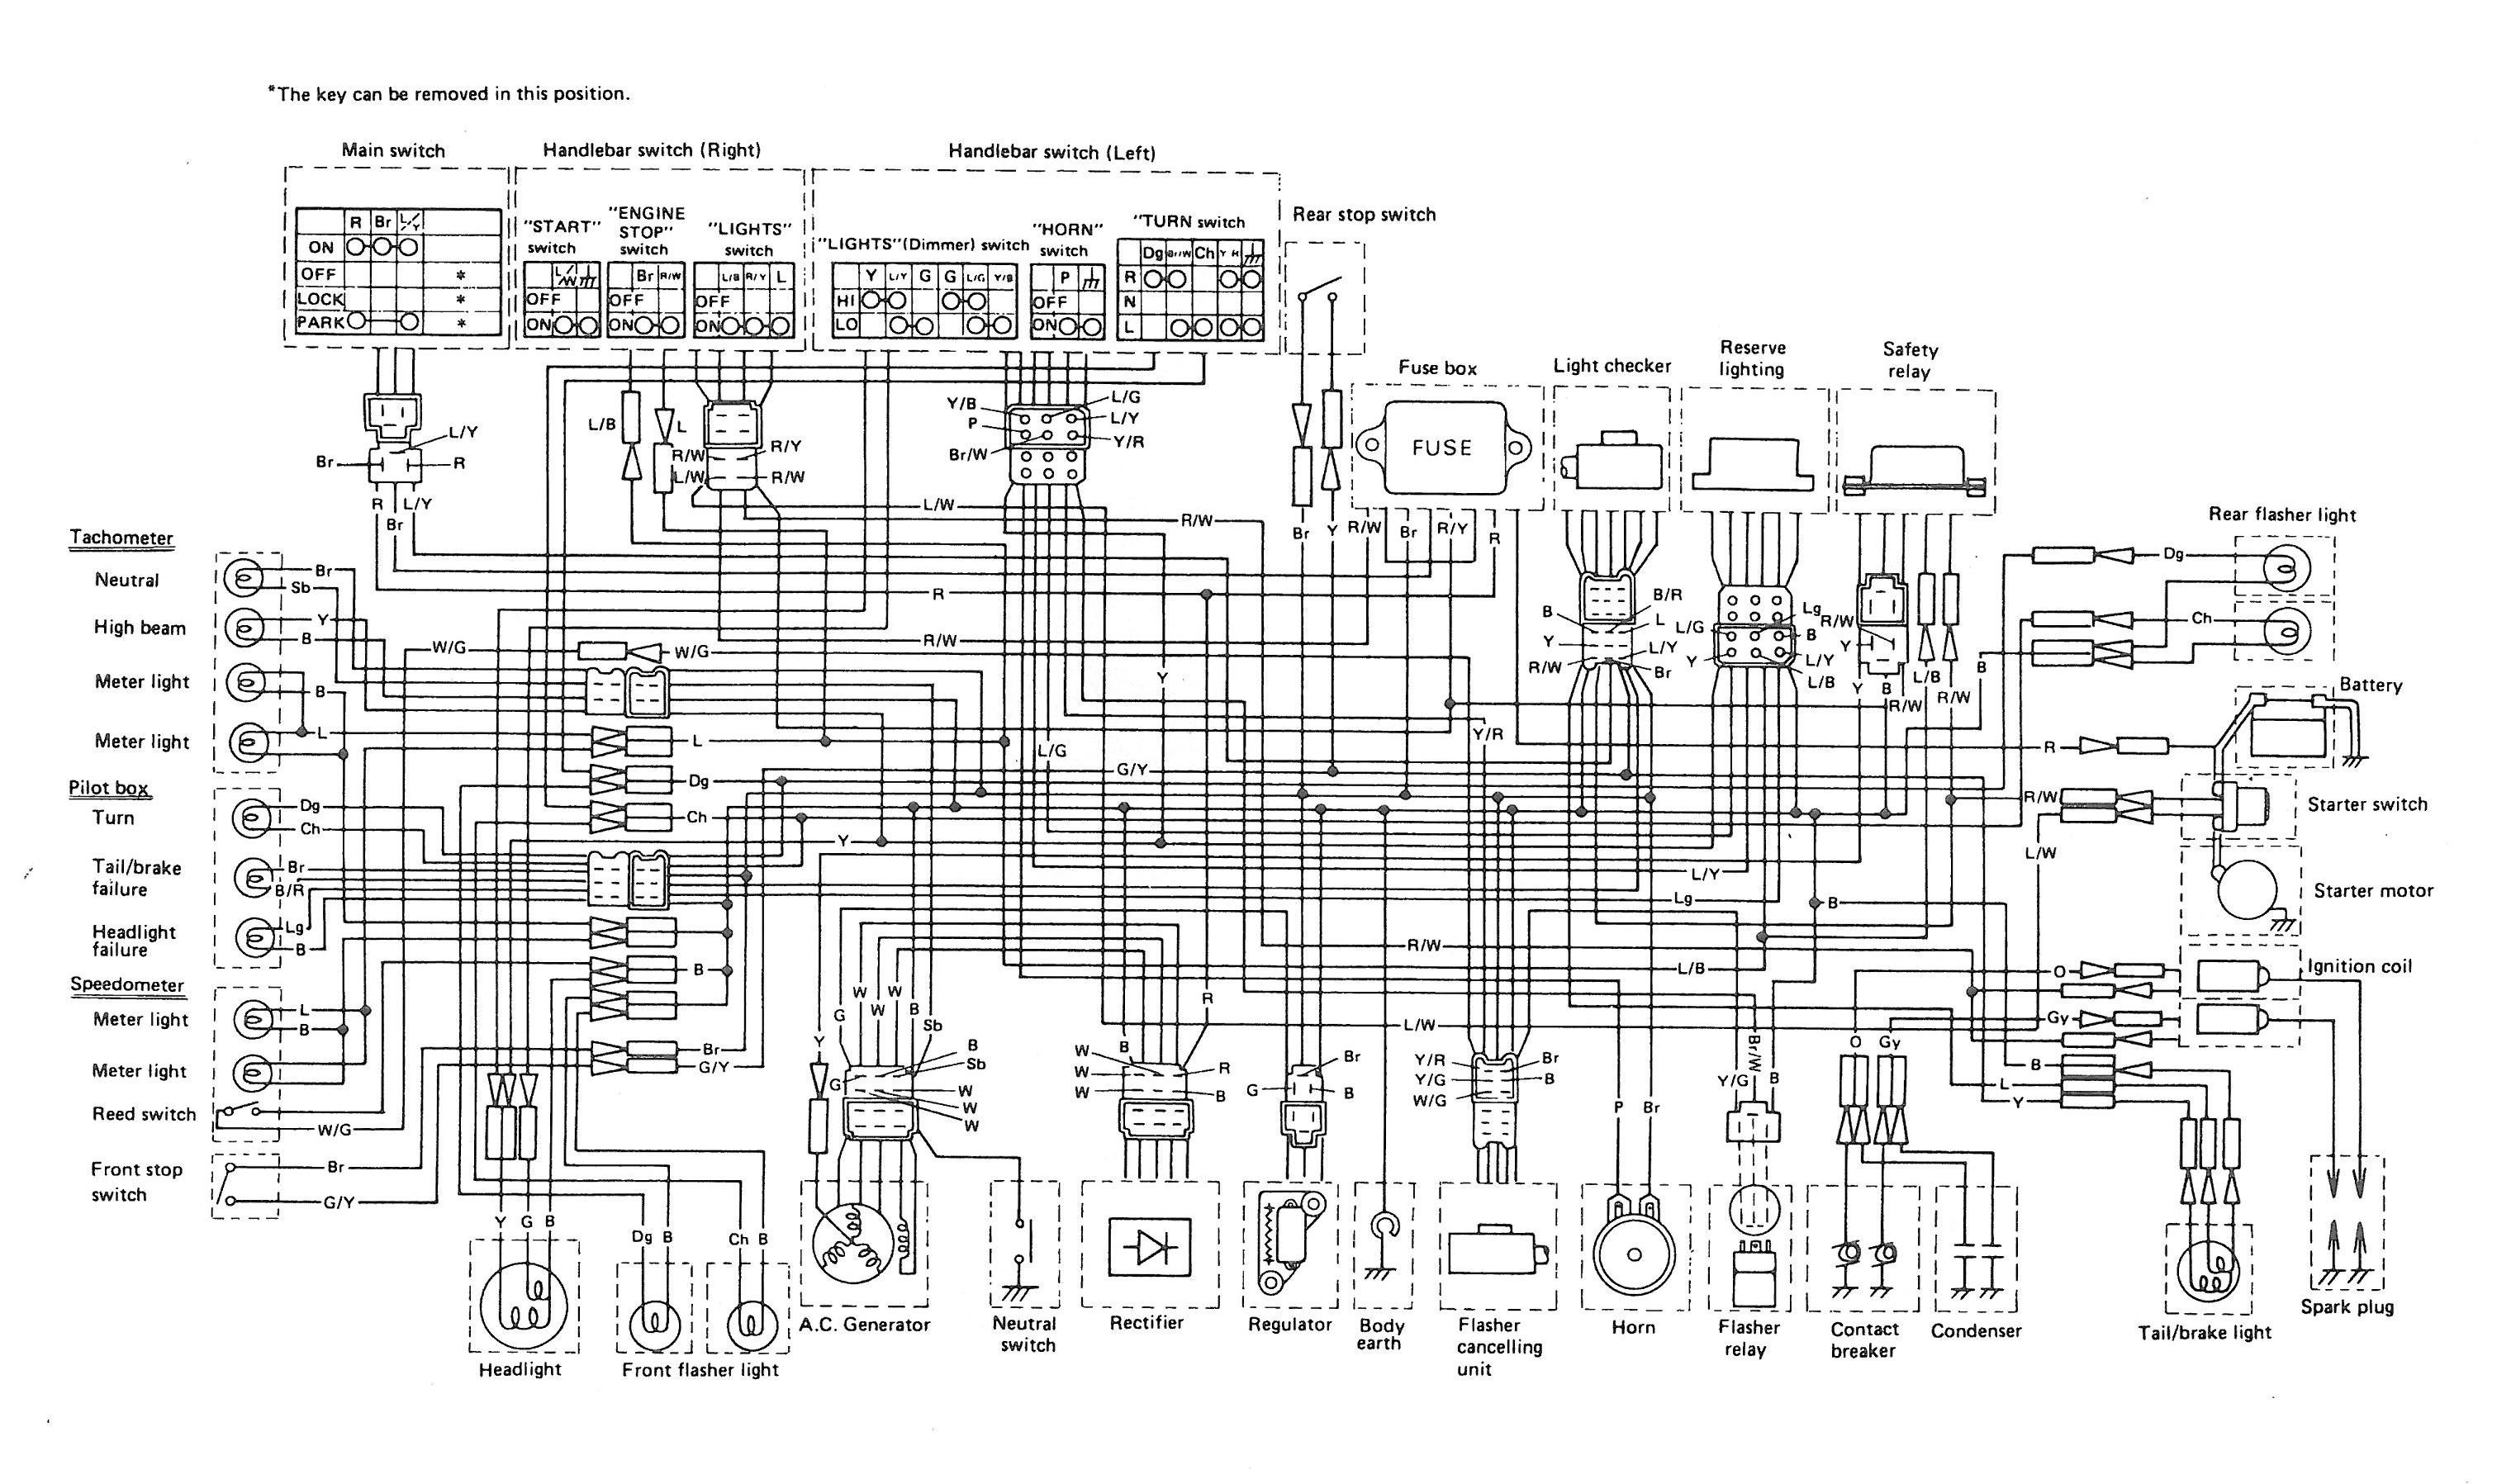 yamaha engine diagram wiring diagram as well yamaha maxim wiring diagram yamaha xs 650 of yamaha engine diagram 1 1974 yamaha dt 100 wiring diagram wiring library